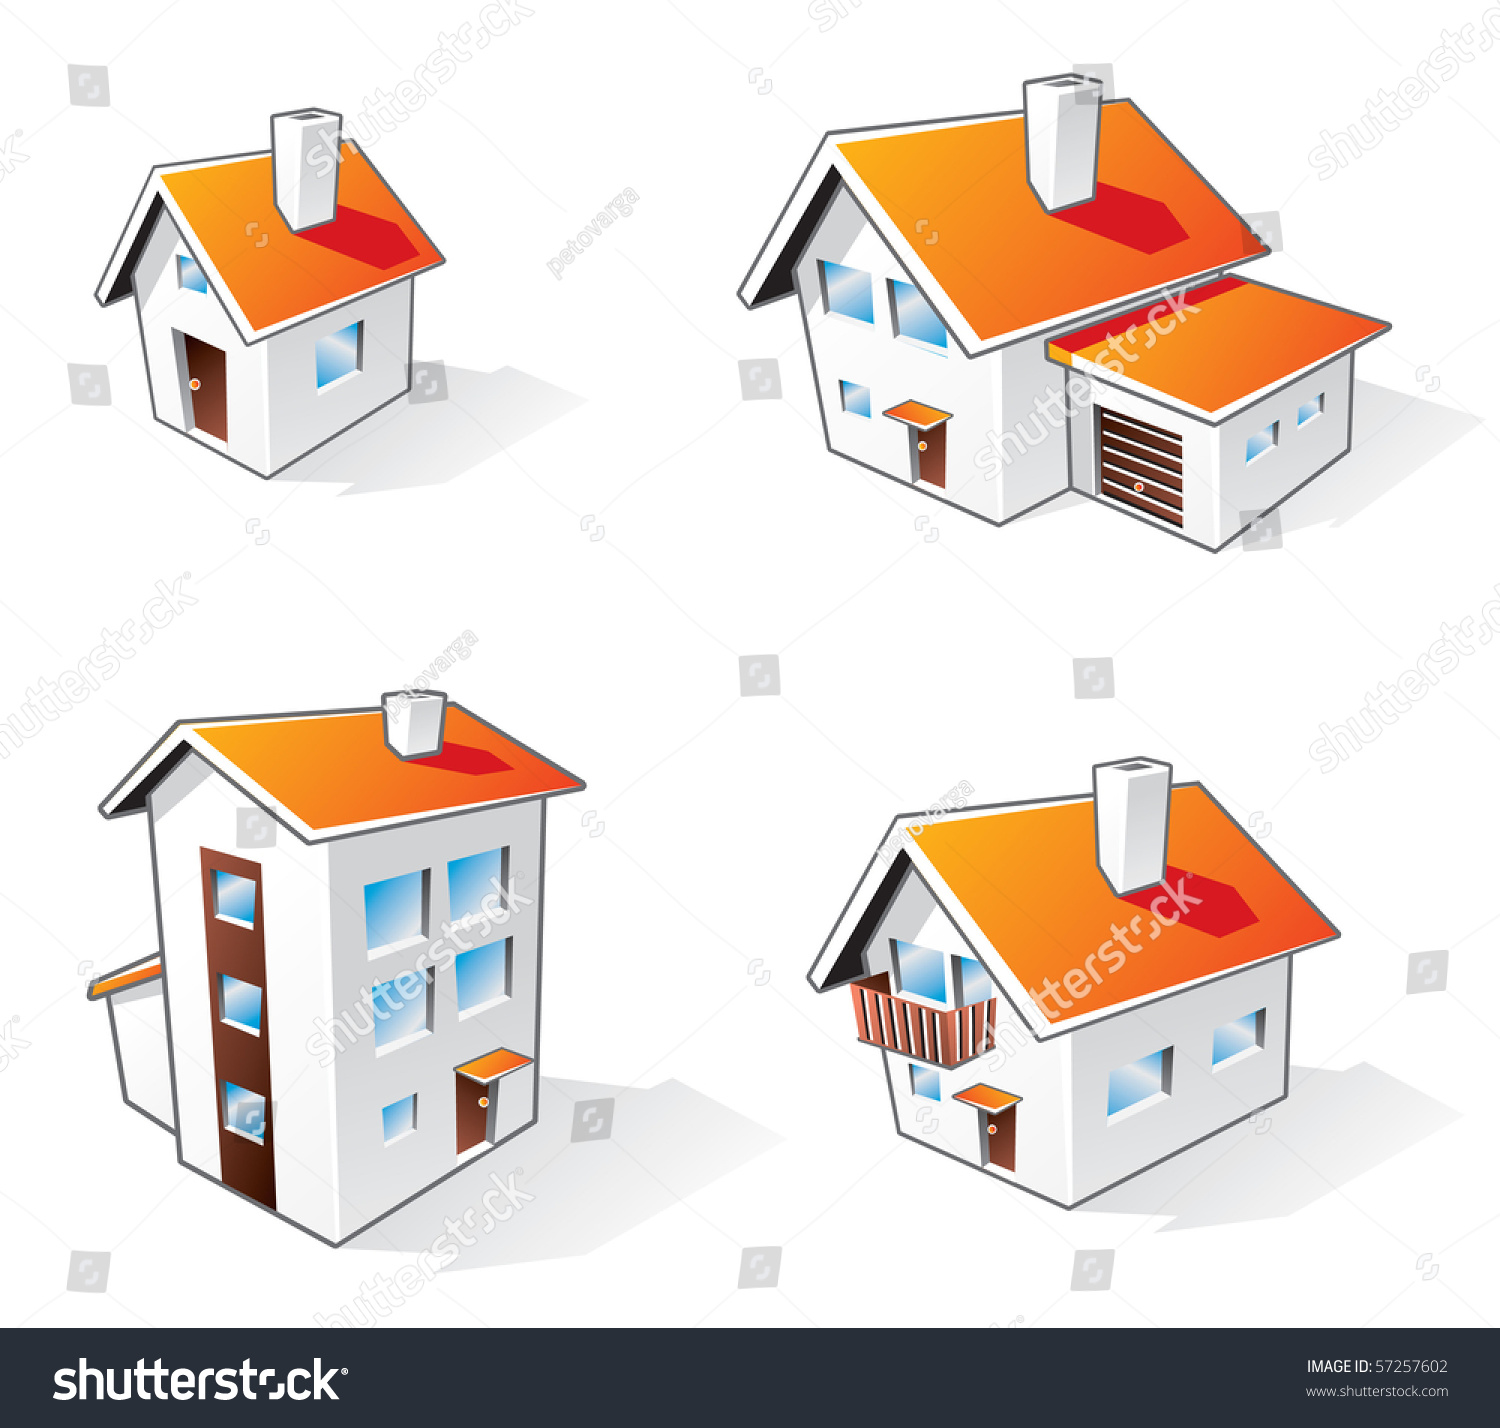 Different pictures of houses